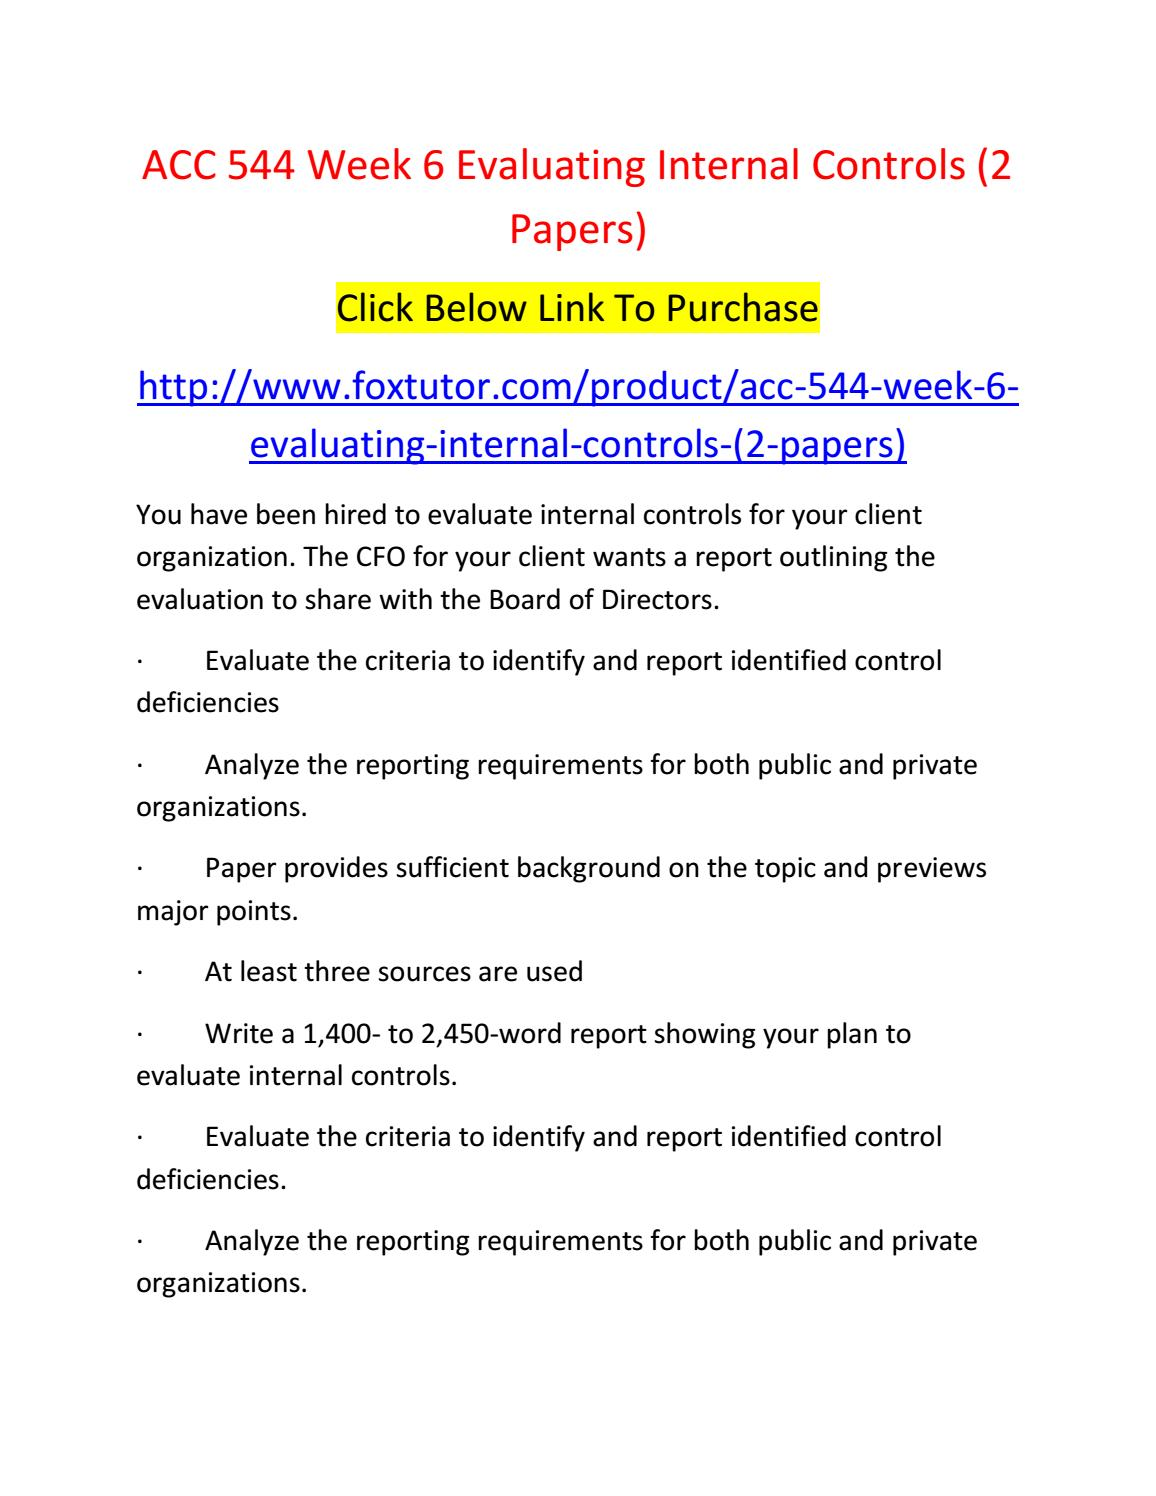 acc 544 week 1 Acc 544 week 1 coso framework (2 papers) this tutorial was purchased 12 times & rated a by student like you this tutorial contains 2 papers imagine you are the director of internal audit and the chairman of the audit committee and asks you to prepare a report for the board of directors explaining the 2012 coso.